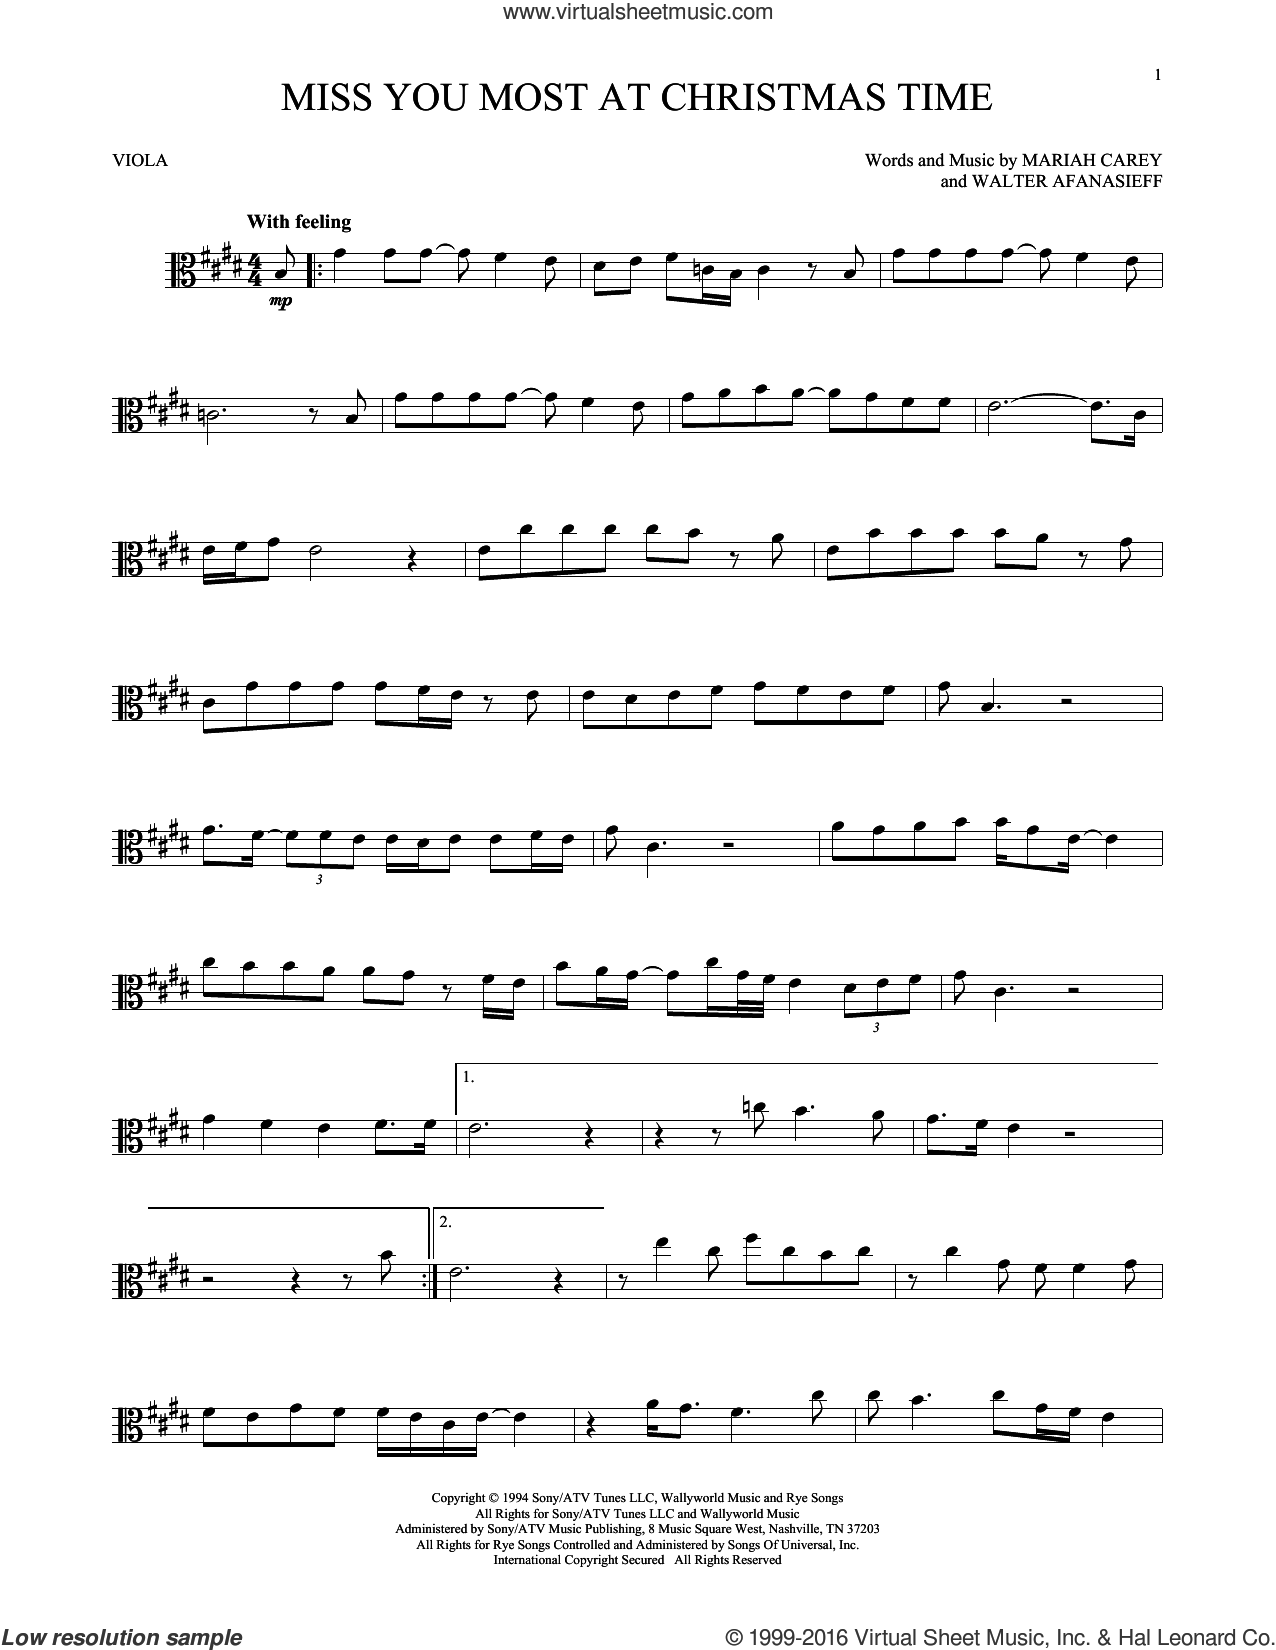 Miss You Most At Christmas Time sheet music for viola solo by Mariah Carey and Walter Afanasieff, intermediate skill level